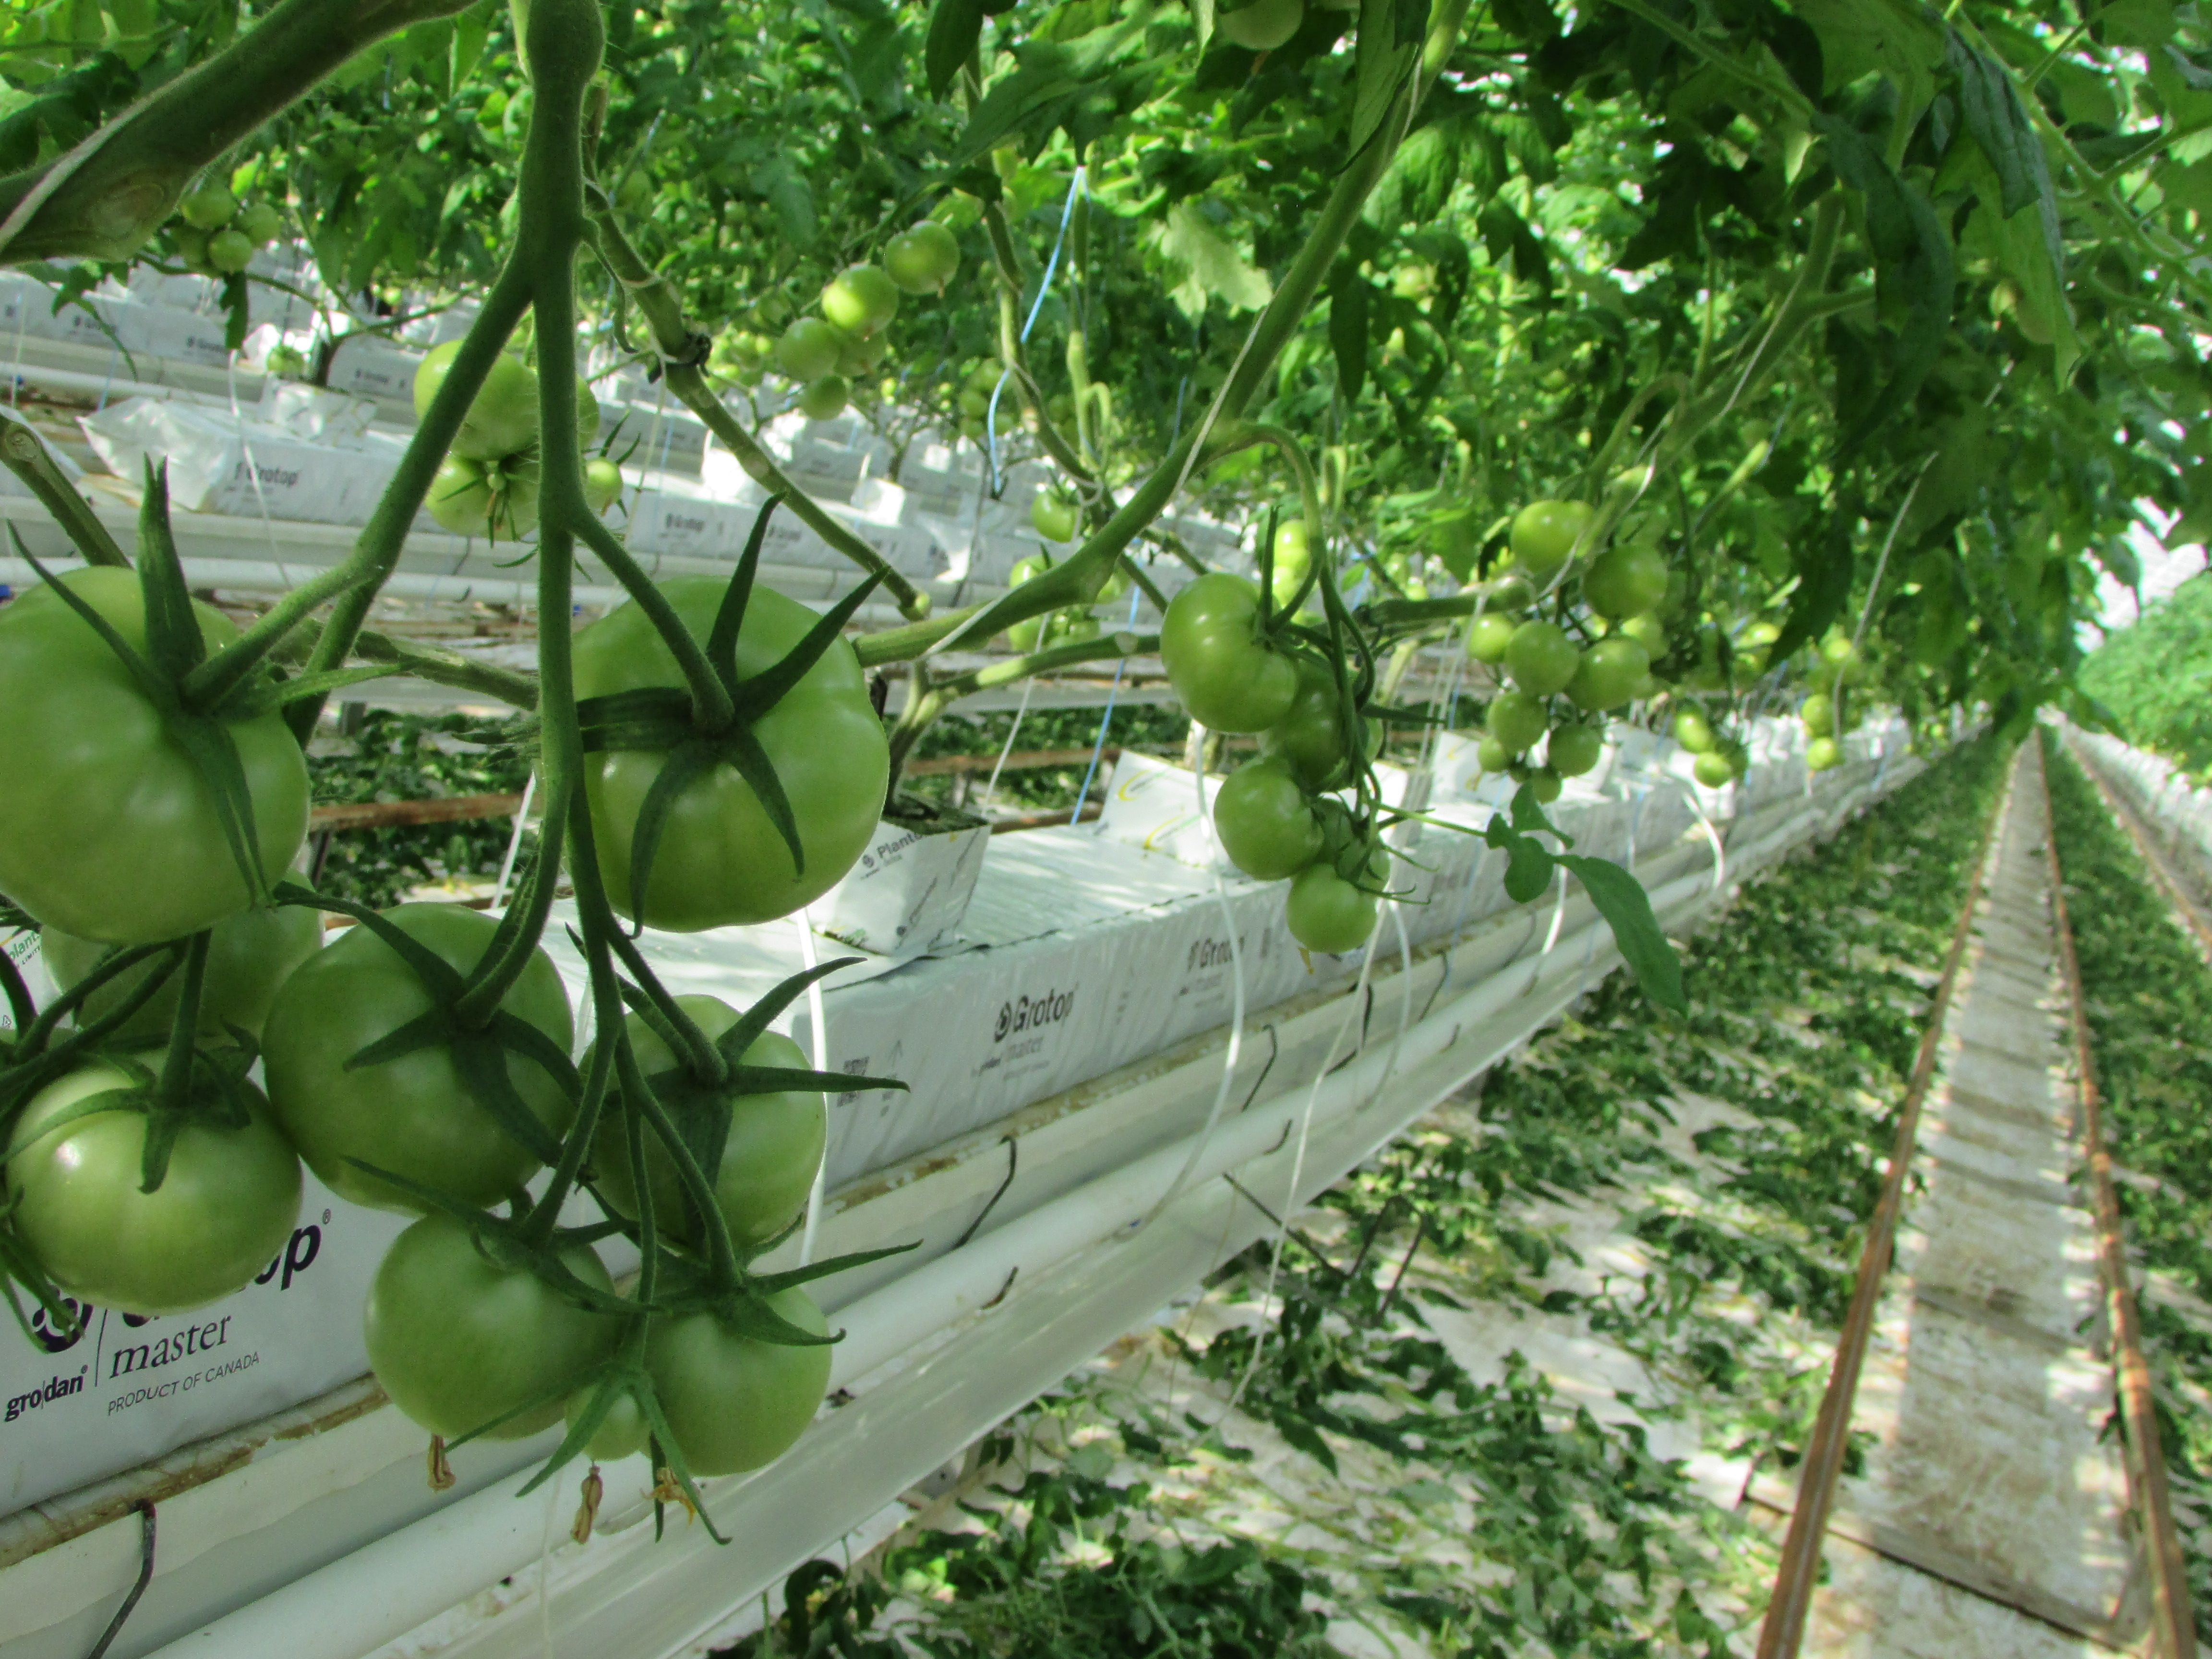 19 Best Our Greenhouses - Albion images in 2017 | Aquaponics